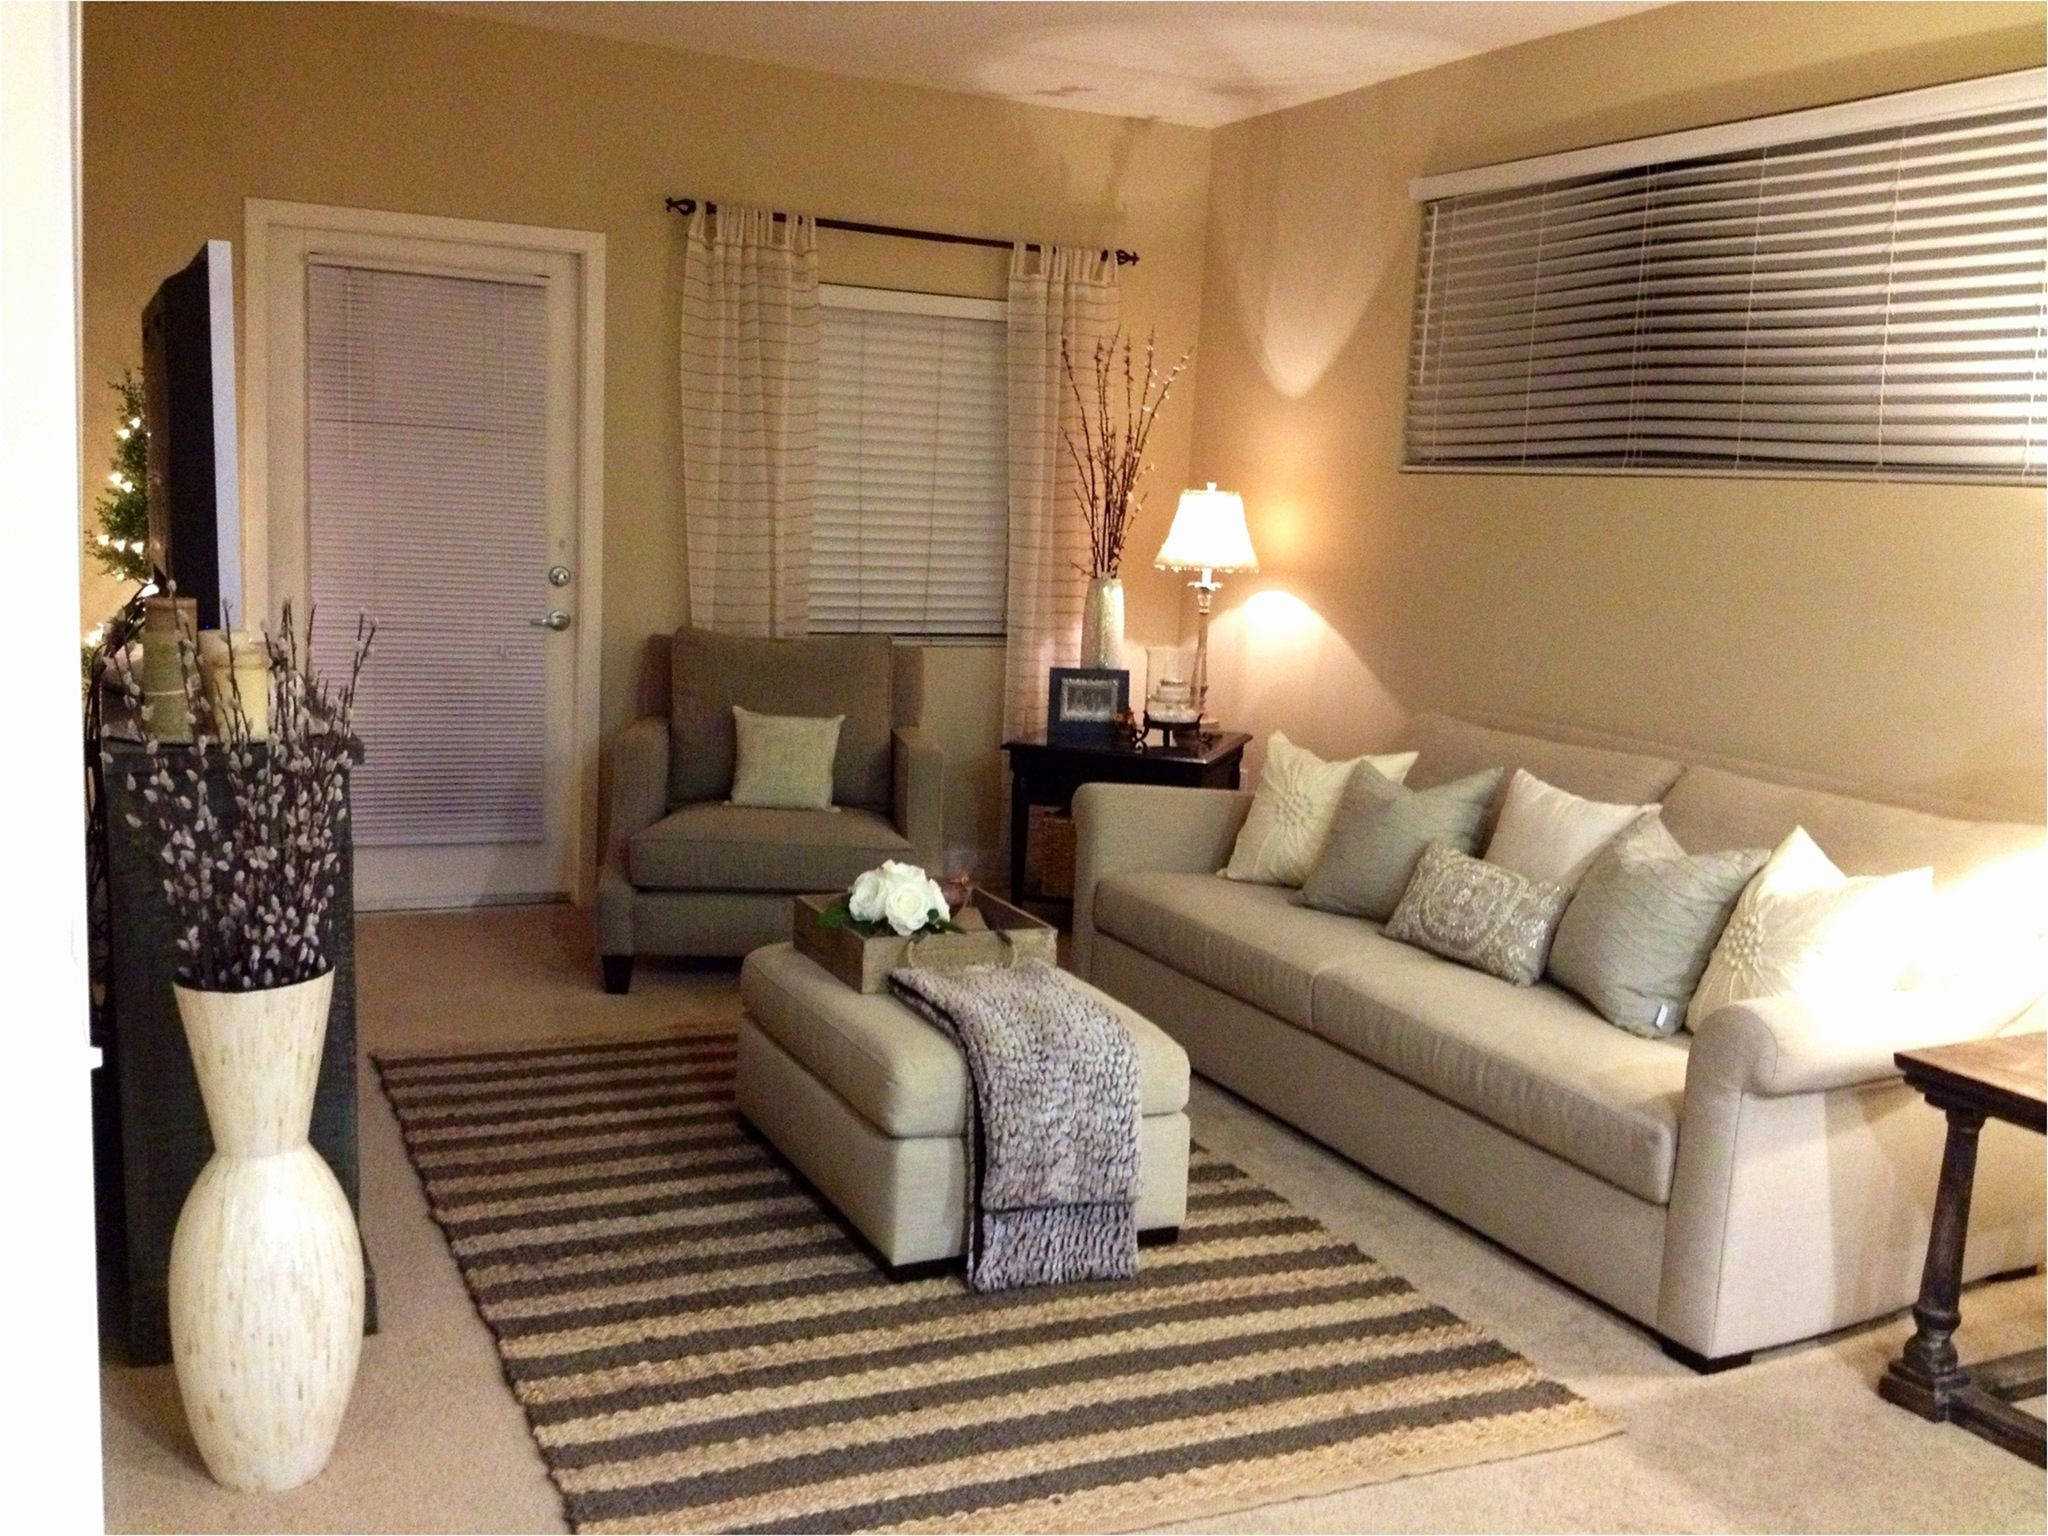 9 Awesome Small Living Room Designs To Inspire You Rectangular